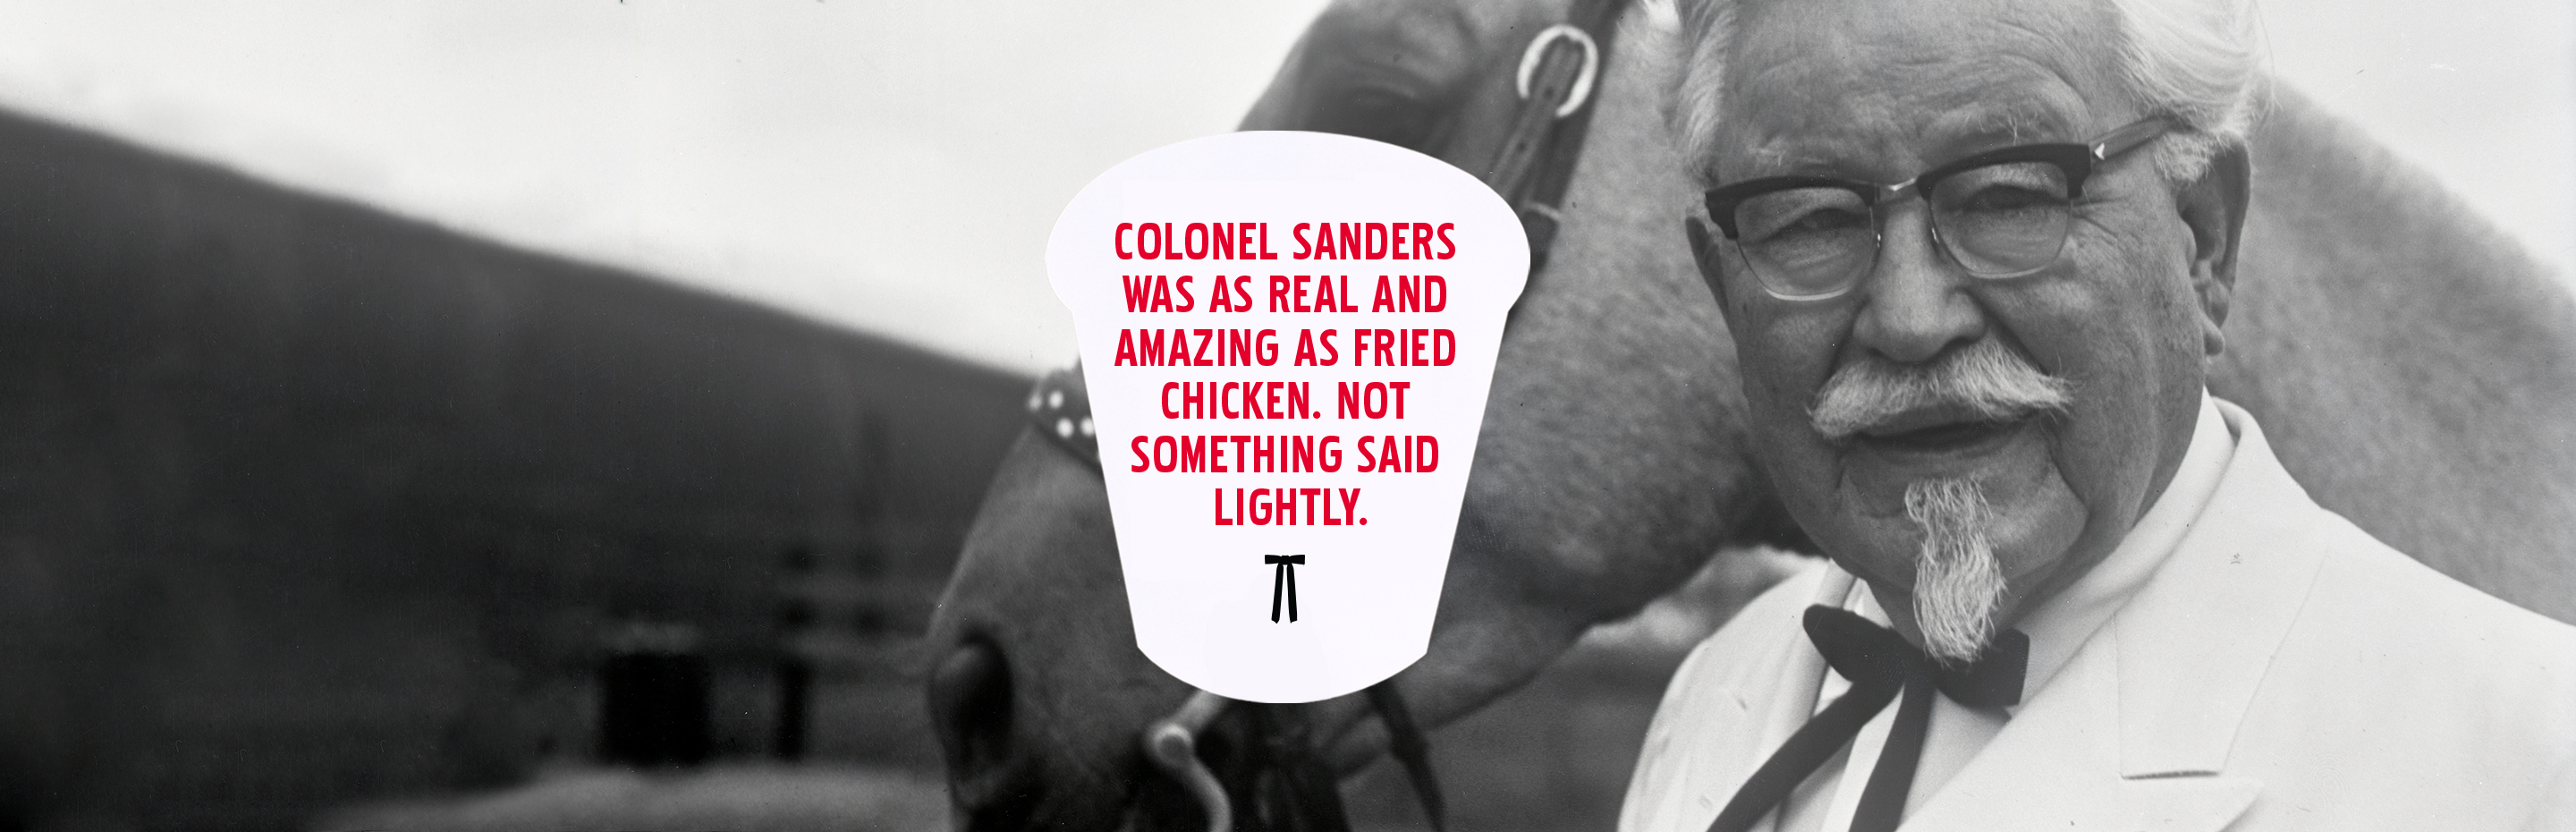 Colonel Sanders was as real and amazing as fried chicken. Not something said lightly.